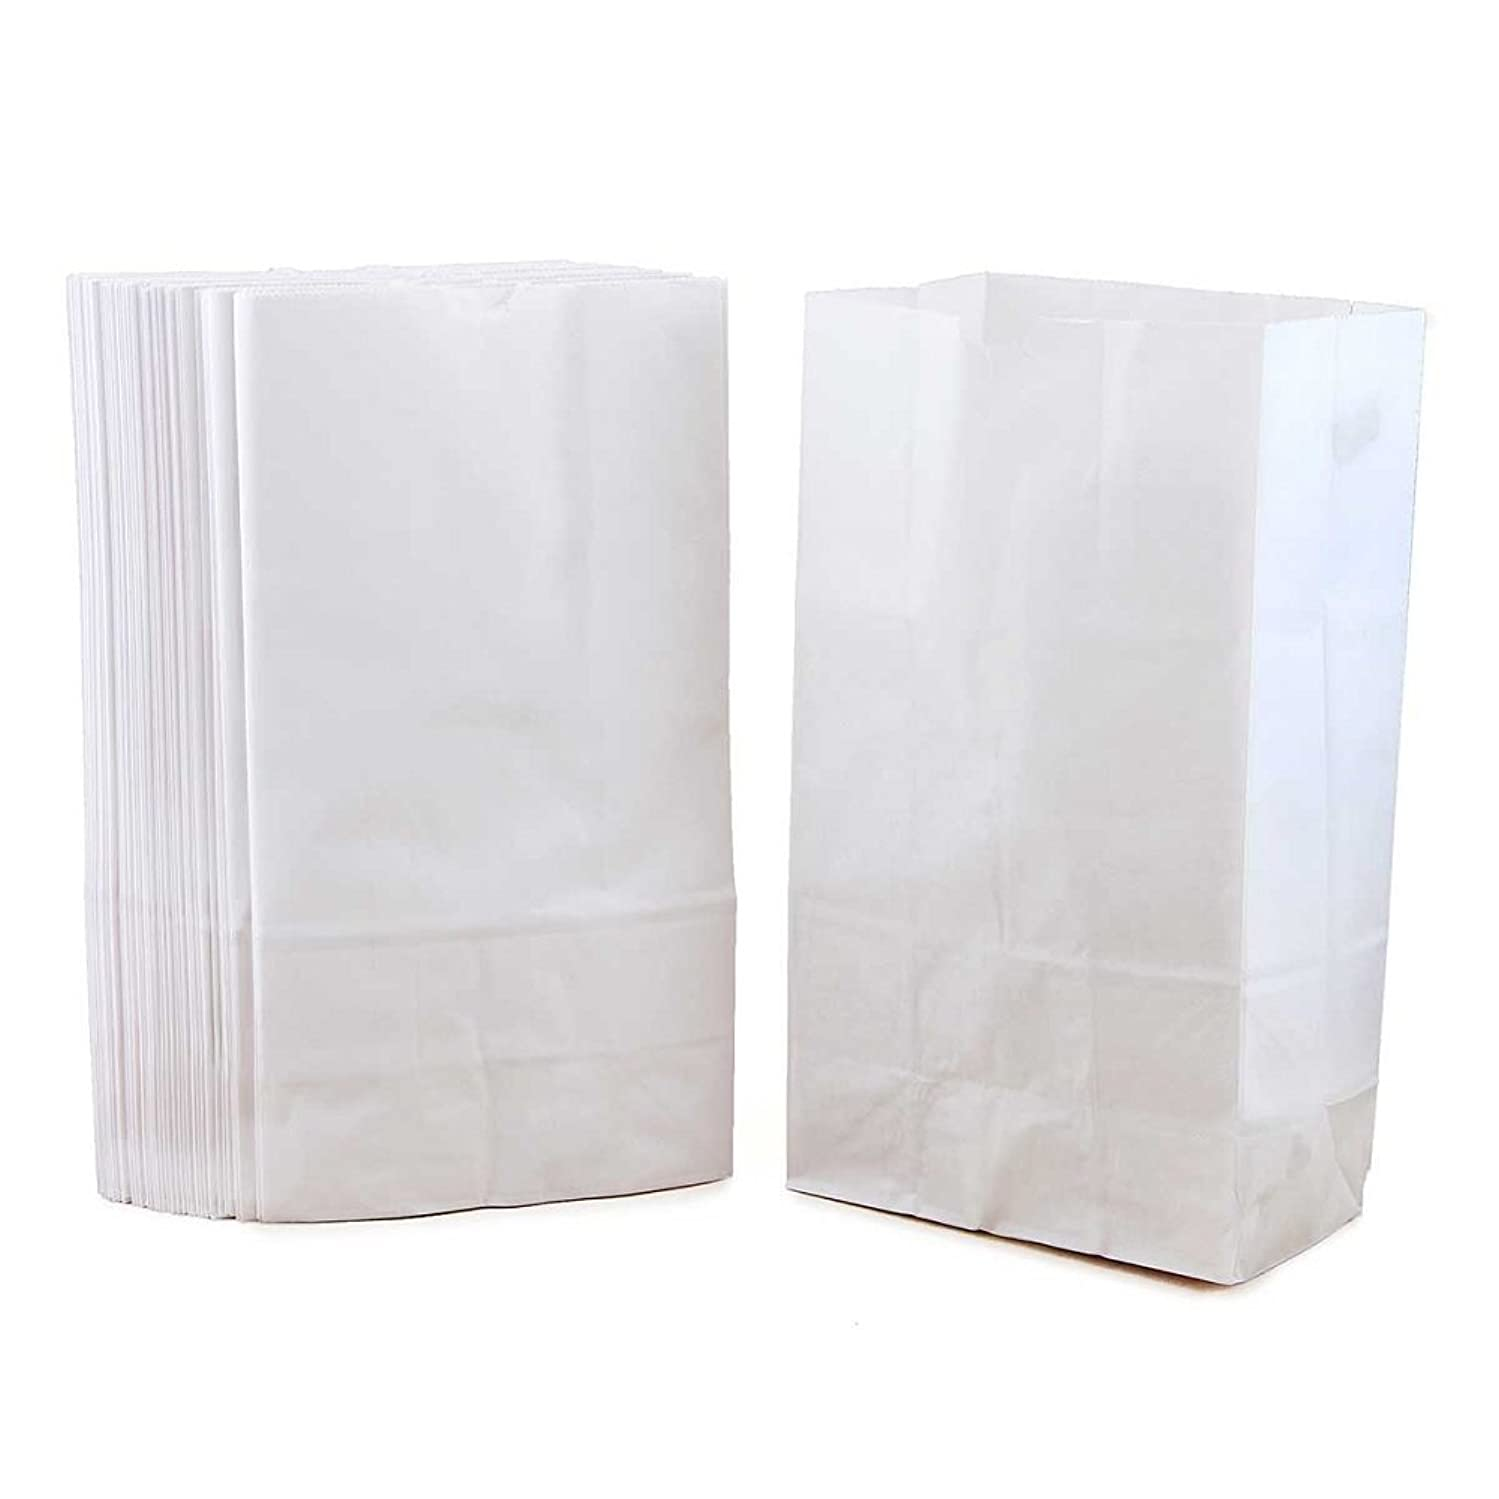 Hygloss Products Gusseted Flat Bottom Kraft Lunch Paper Bags - 8-3/16 x 2-1/4 x 4-1/4 Inch, White, 100 Pack